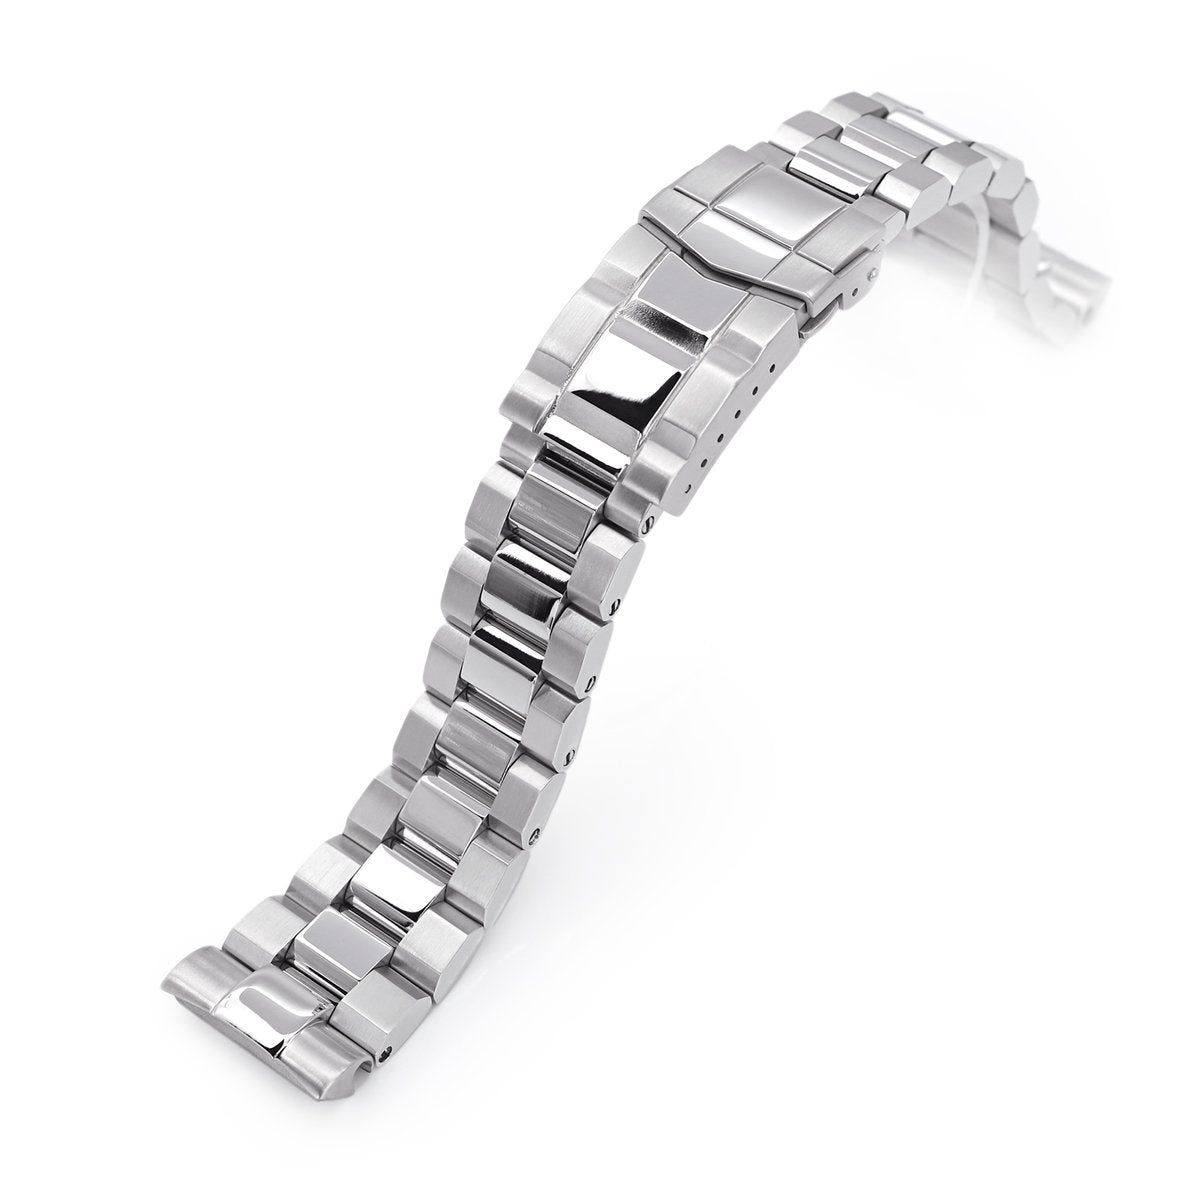 22mm Hexad 316L Stainless Steel Watch Band for Seiko New Turtles SRP777 & PADI SRPA21 Polished & Brushed SUB Clasp Strapcode Watch Bands